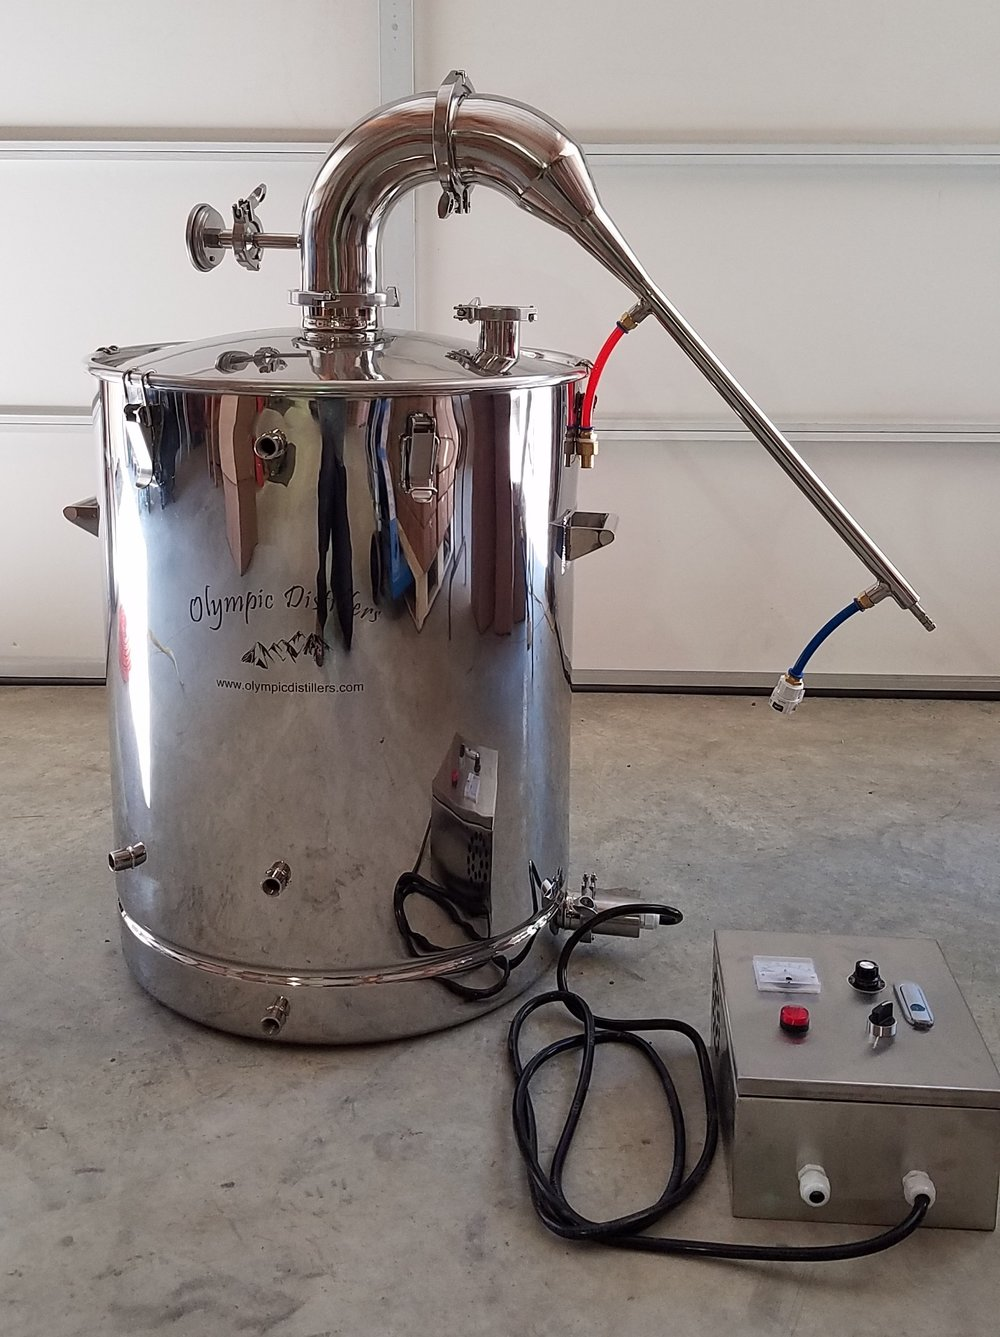 stainless steel essential oil still 200L